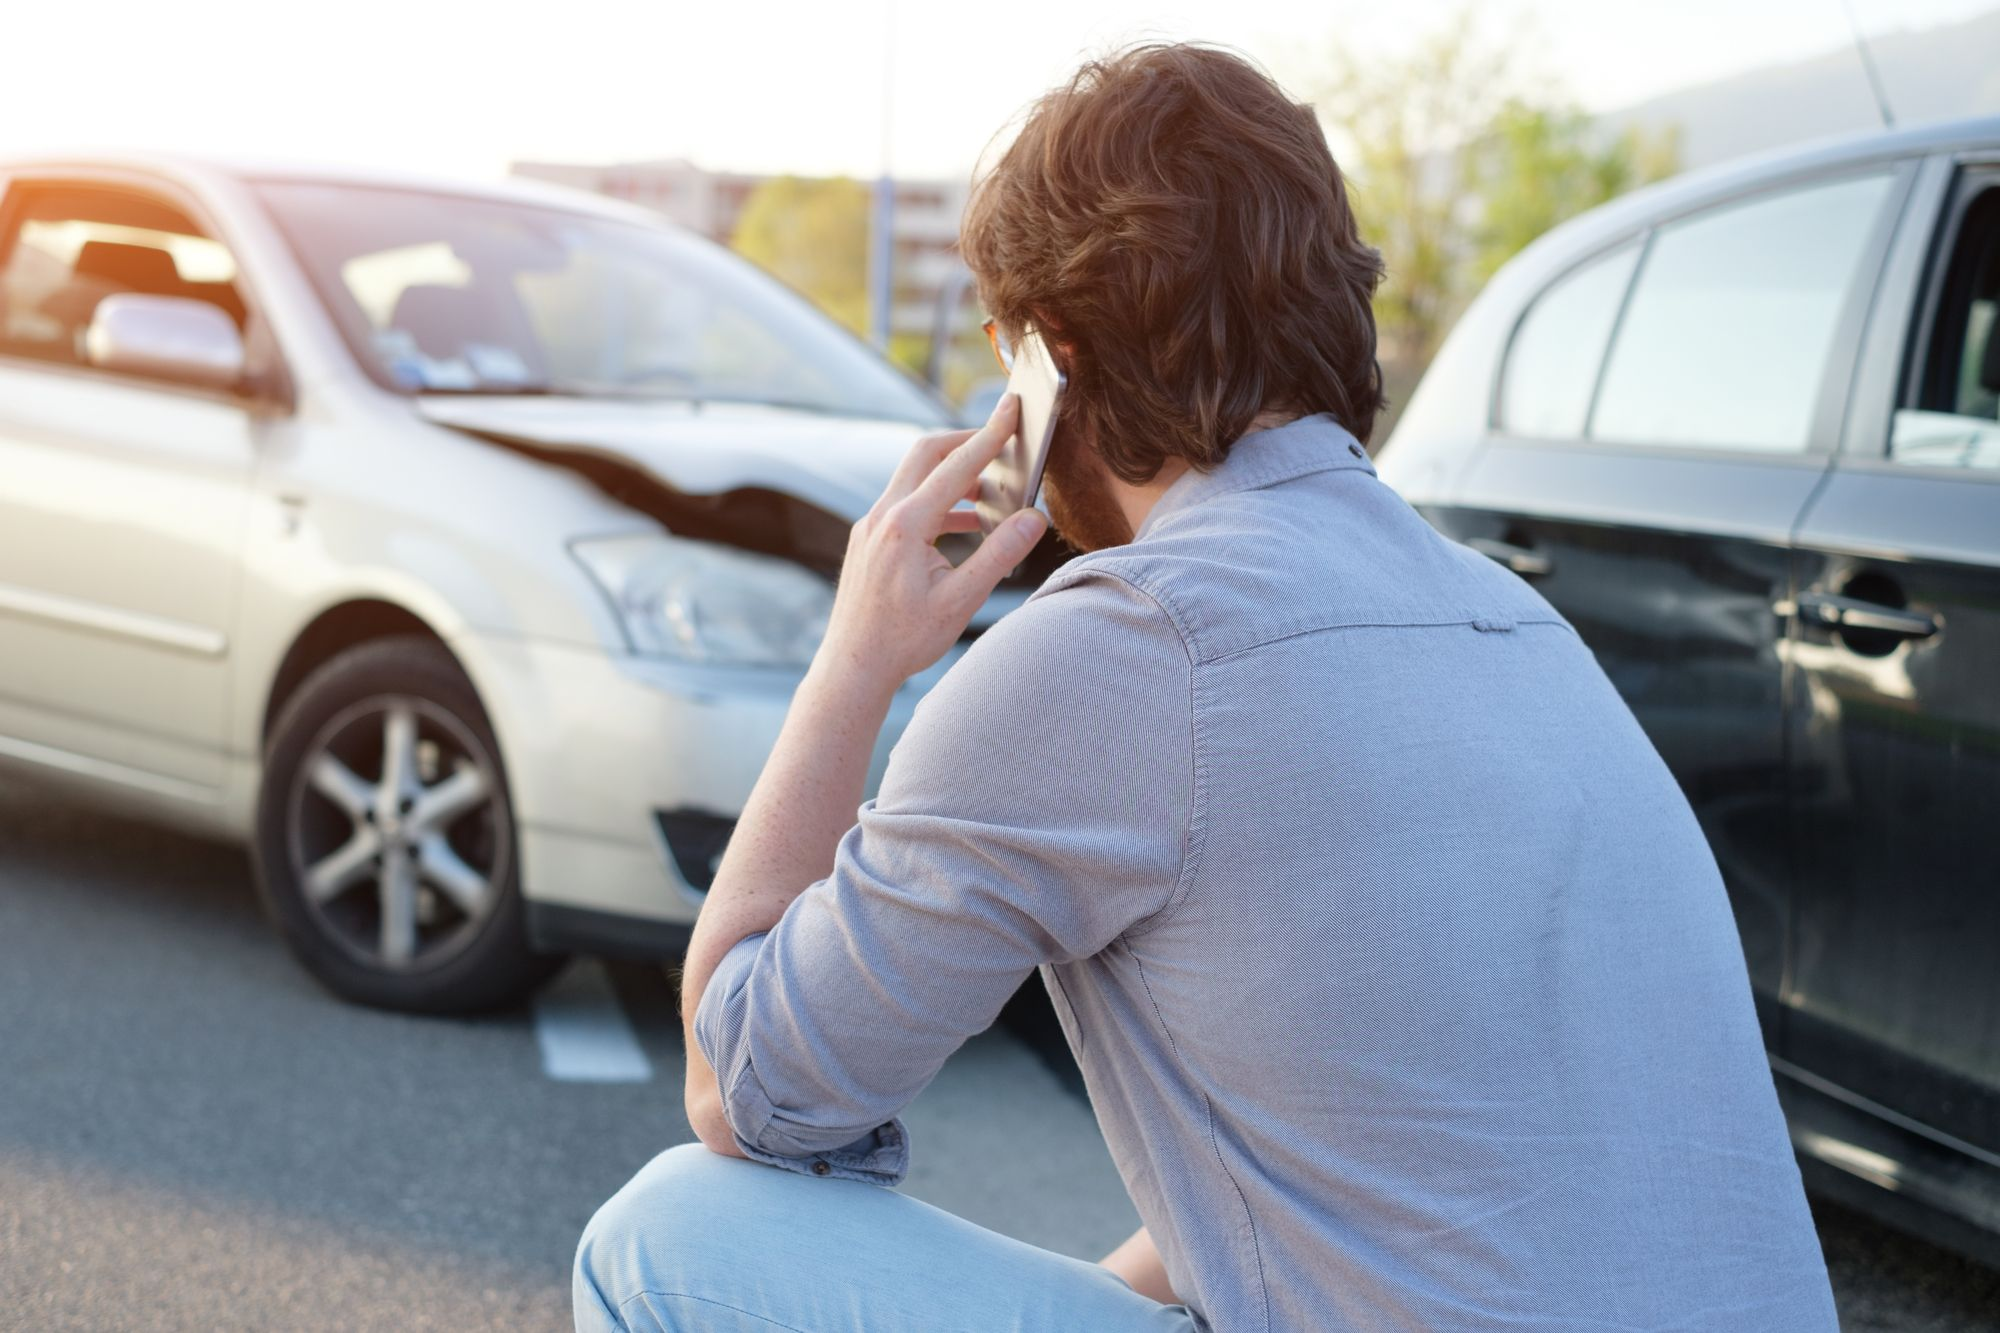 Dealing with a car accident